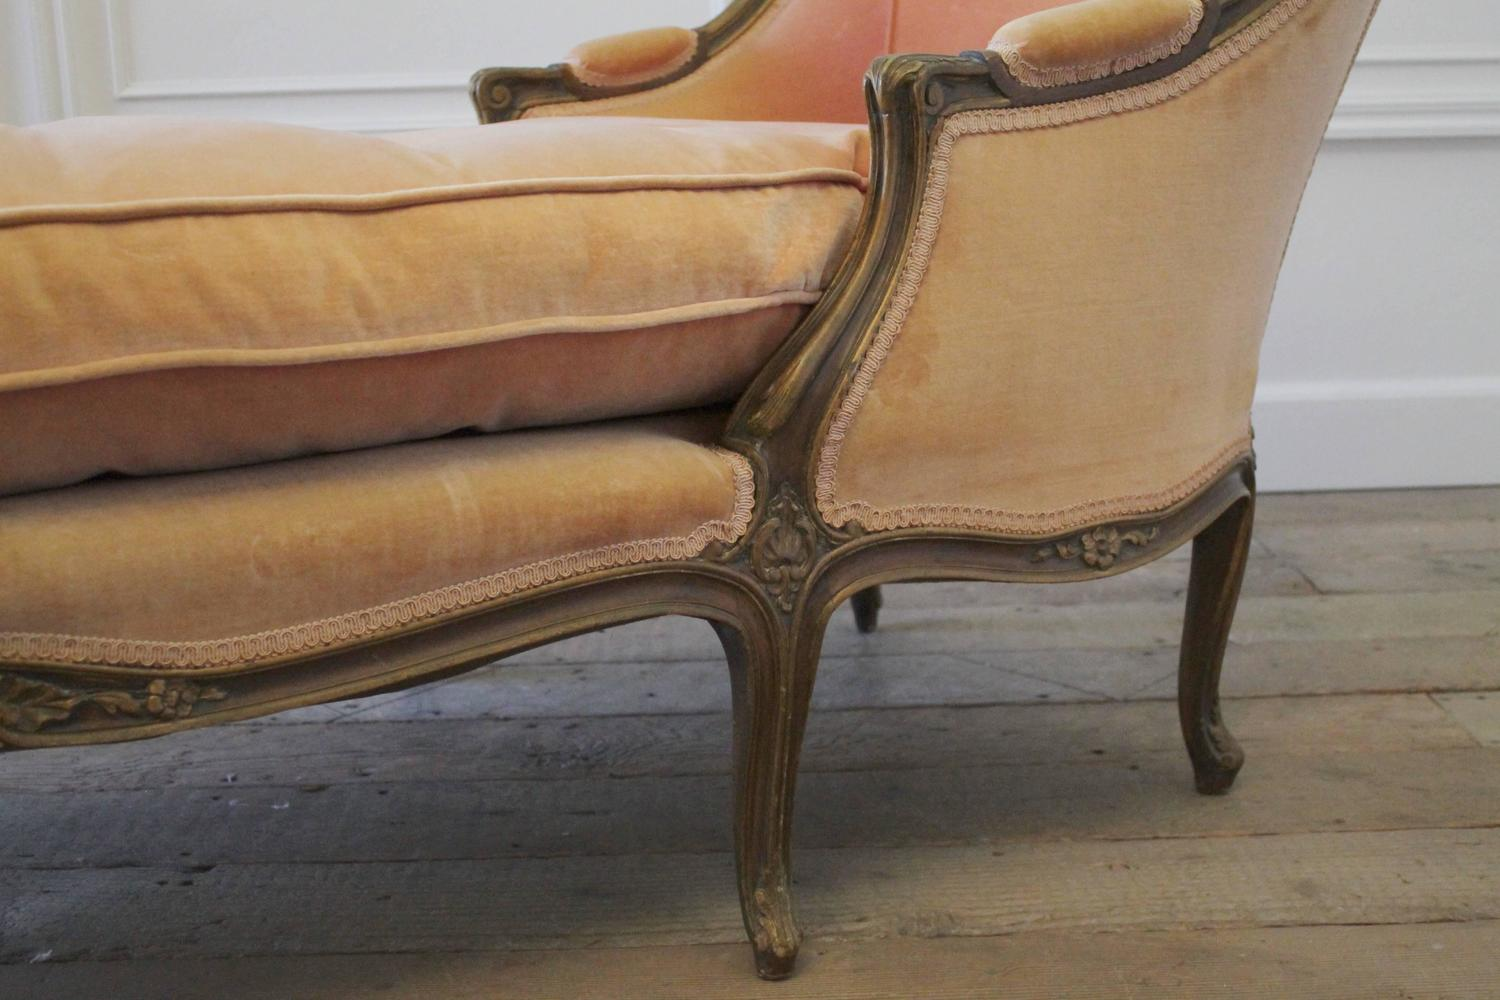 19th century antique louis xv style chaise longue in vintage velvet at 1stdibs